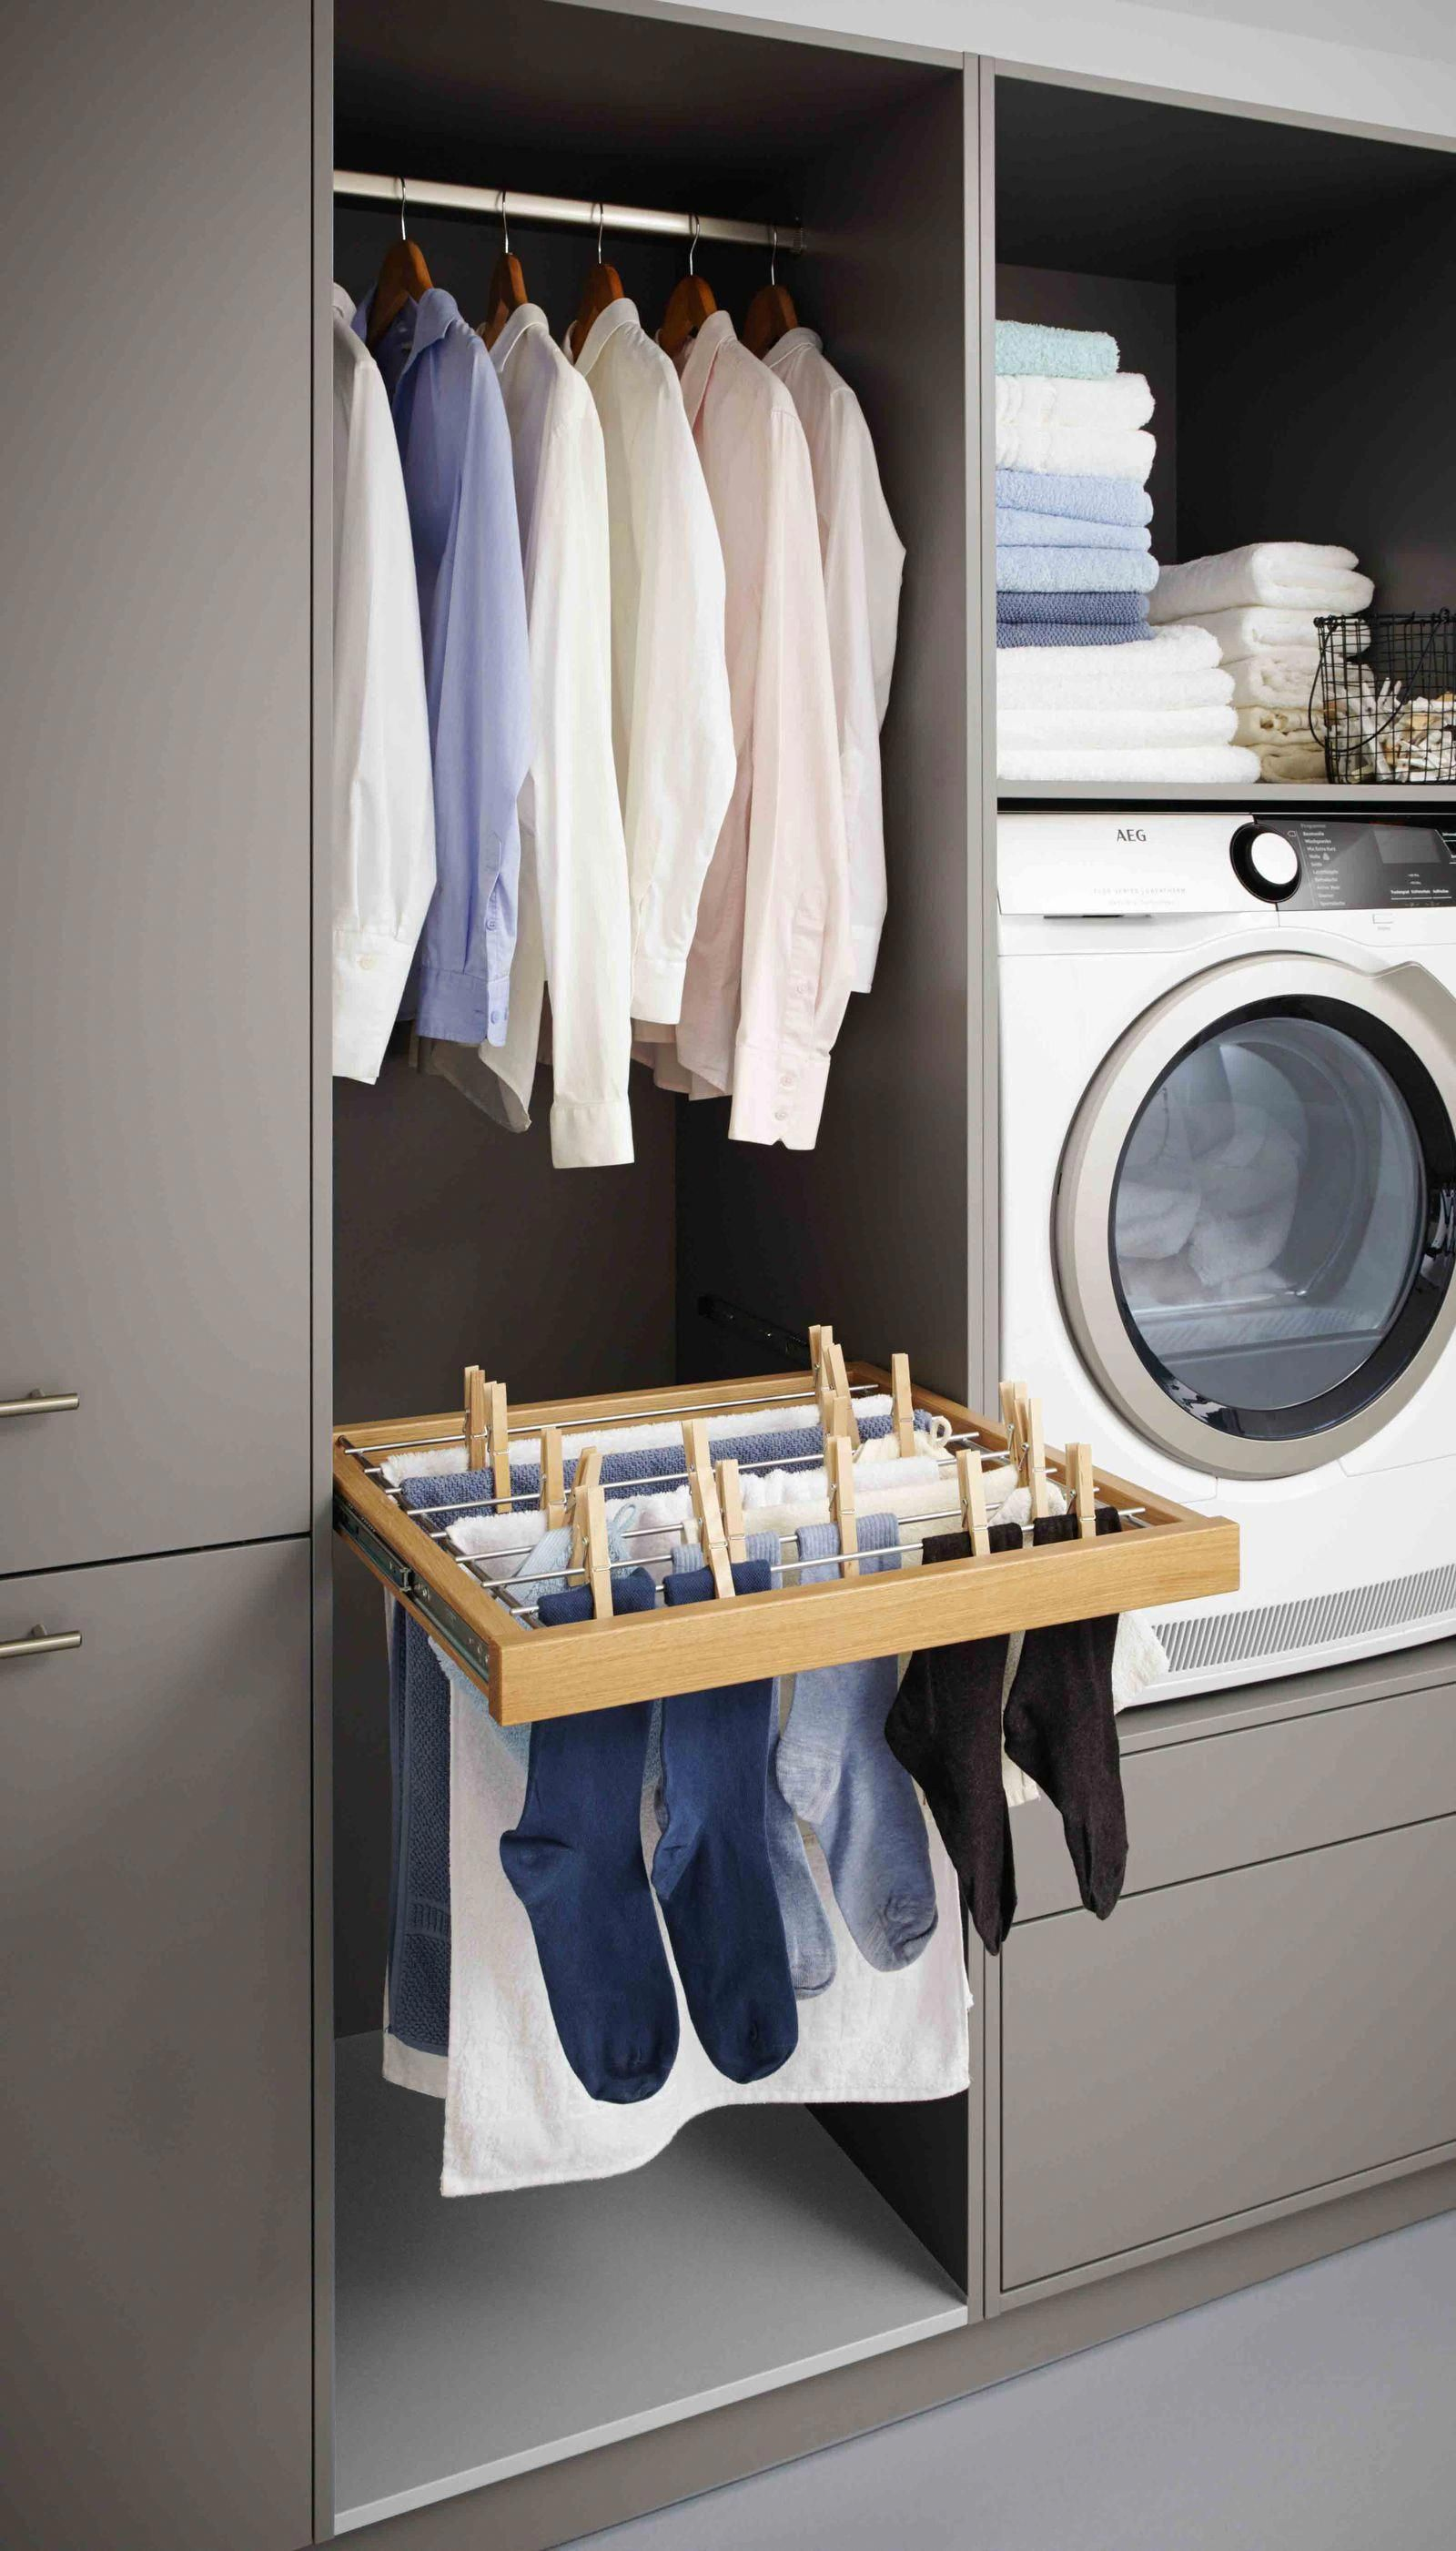 See Our Website For Additional Info On Laundry Room Storage